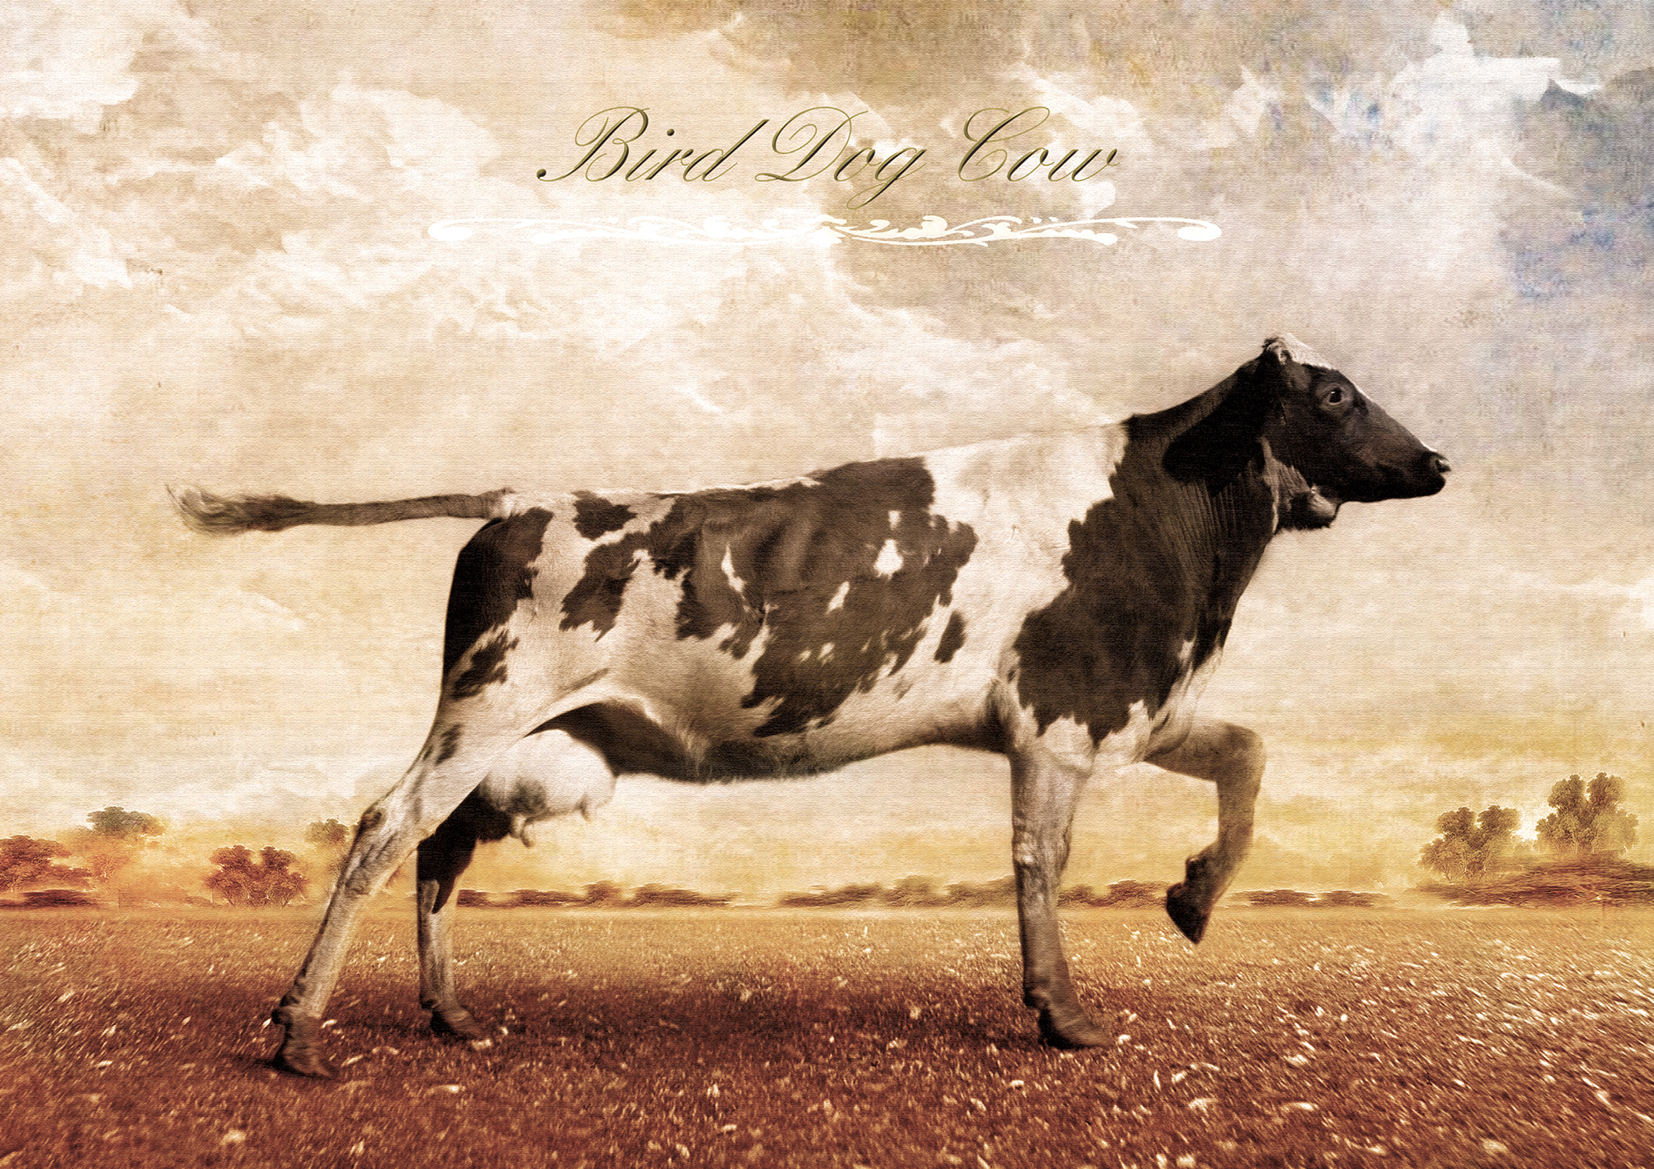 Bird Dog Cow Cow Planet